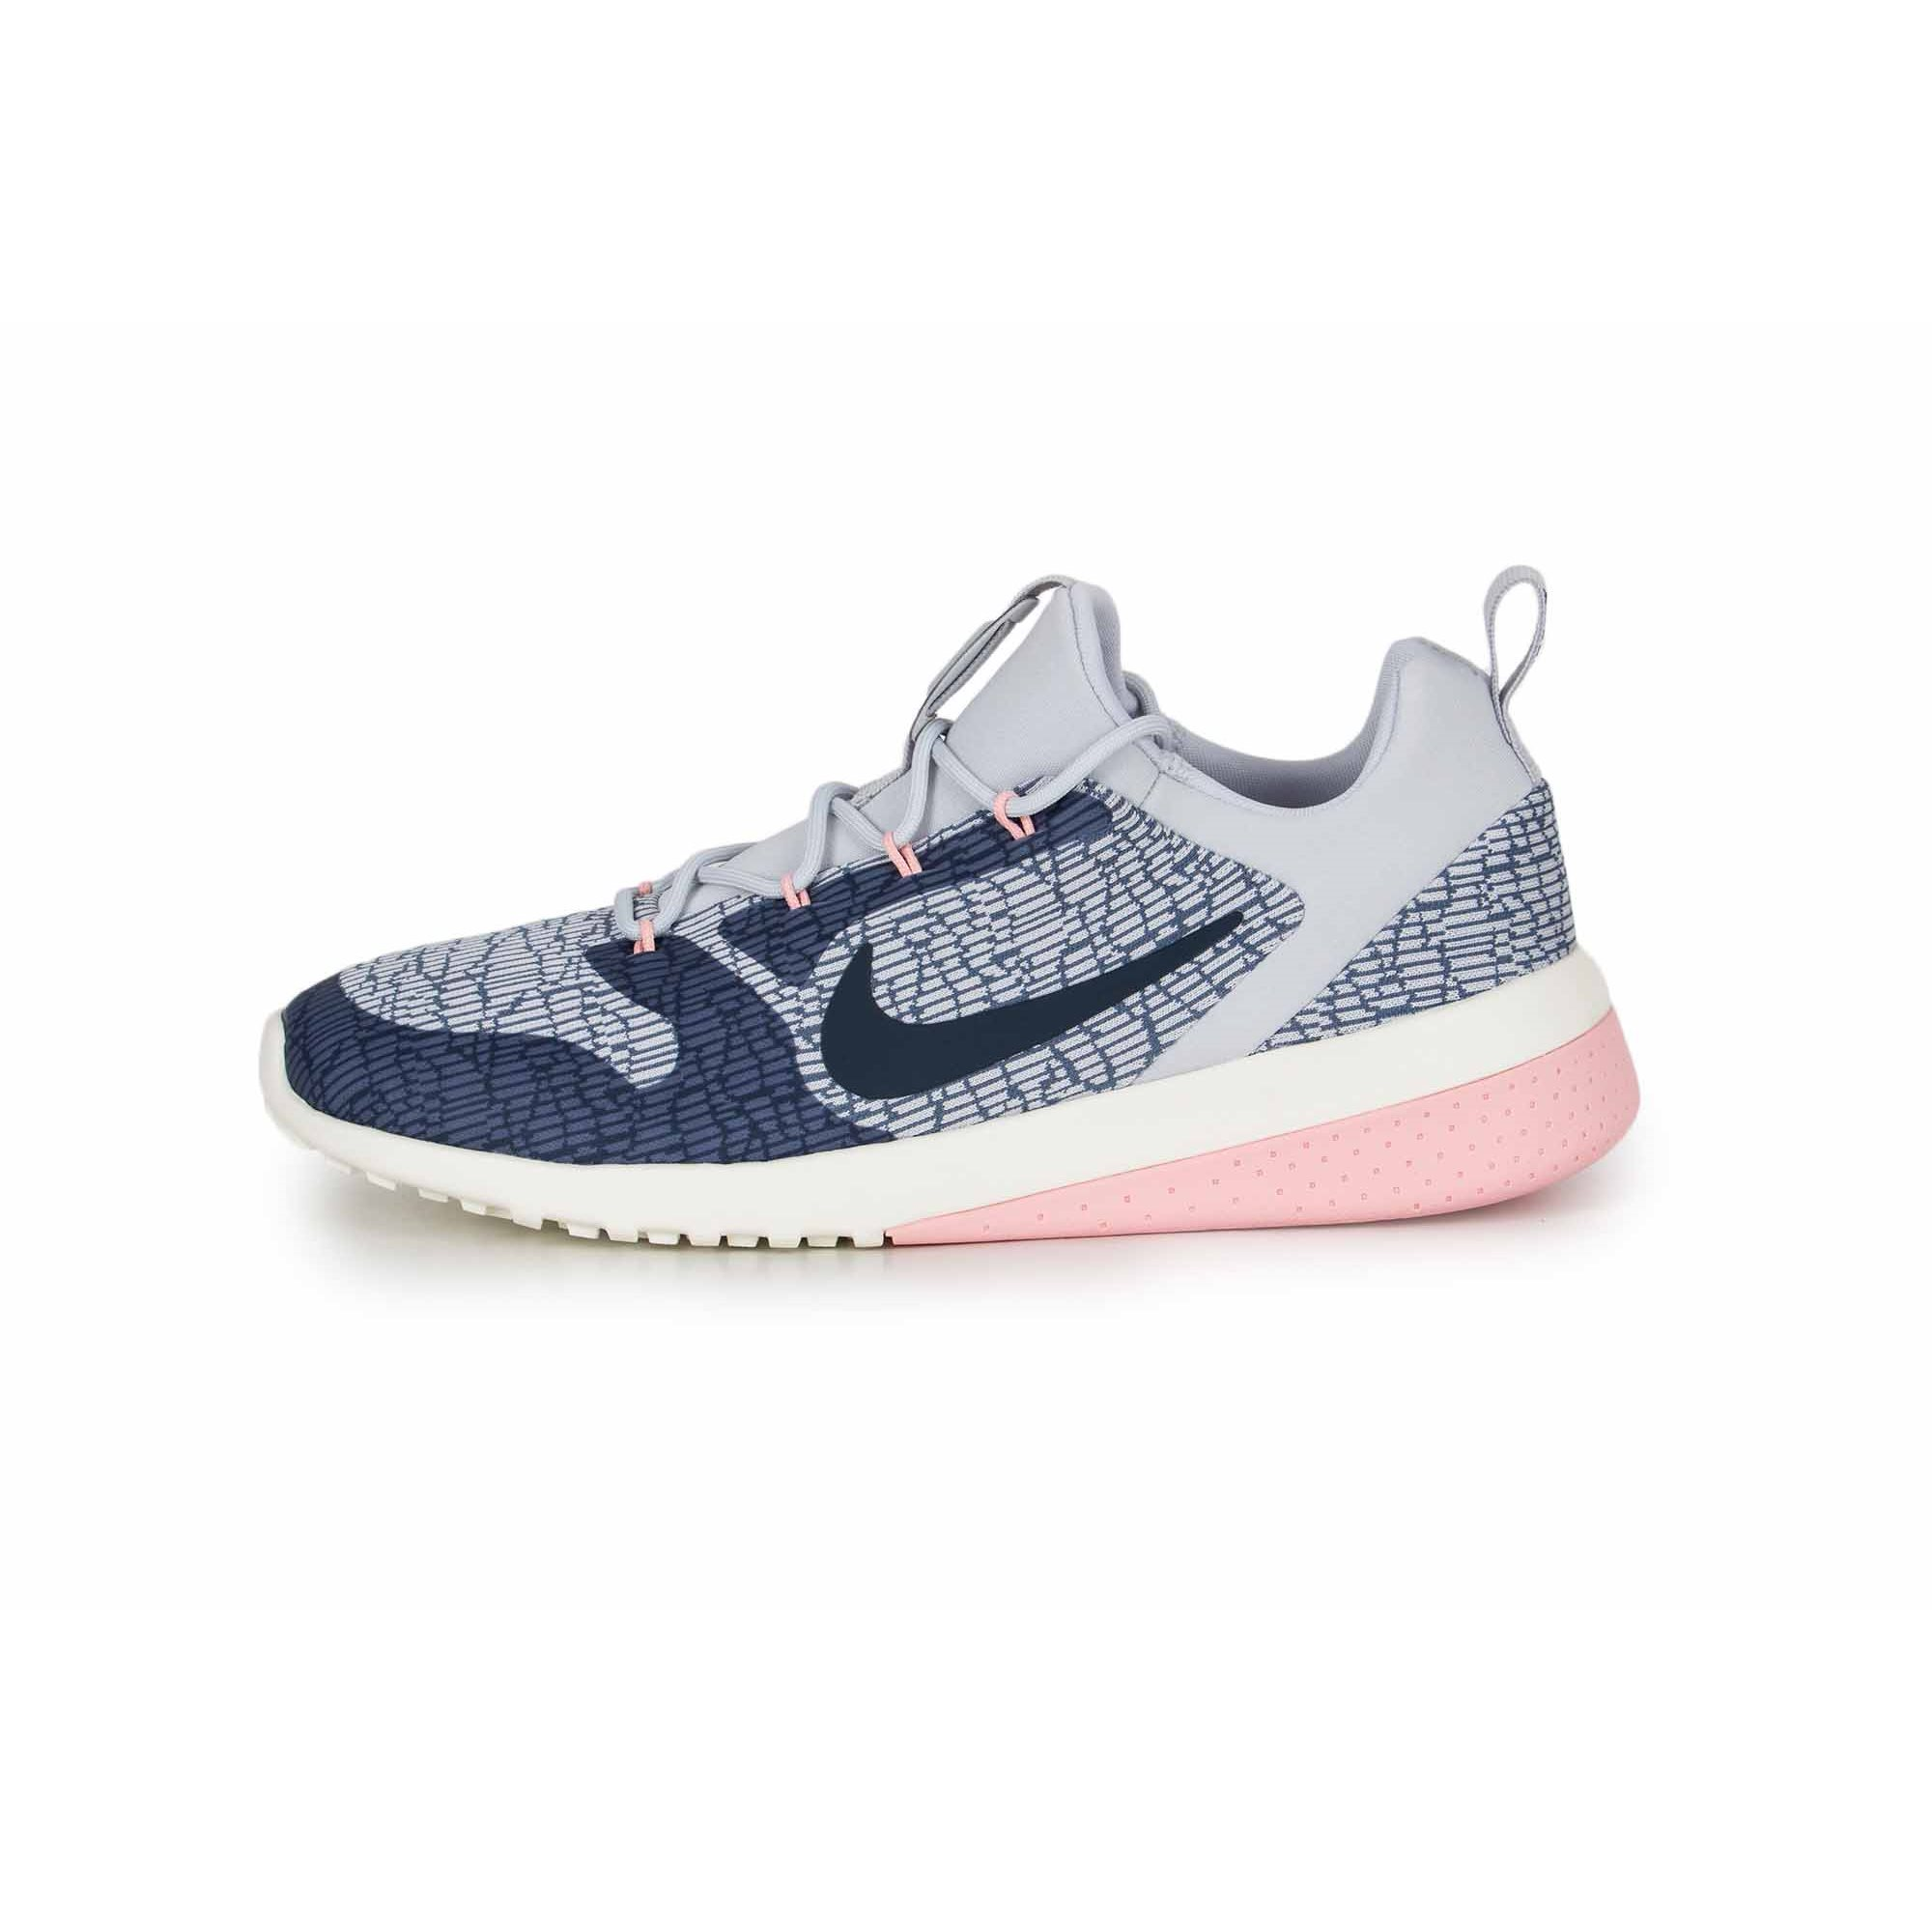 quality design a8d7b 3651e Nike Womens Ck Racer Low Top Lace Up Running Sneaker